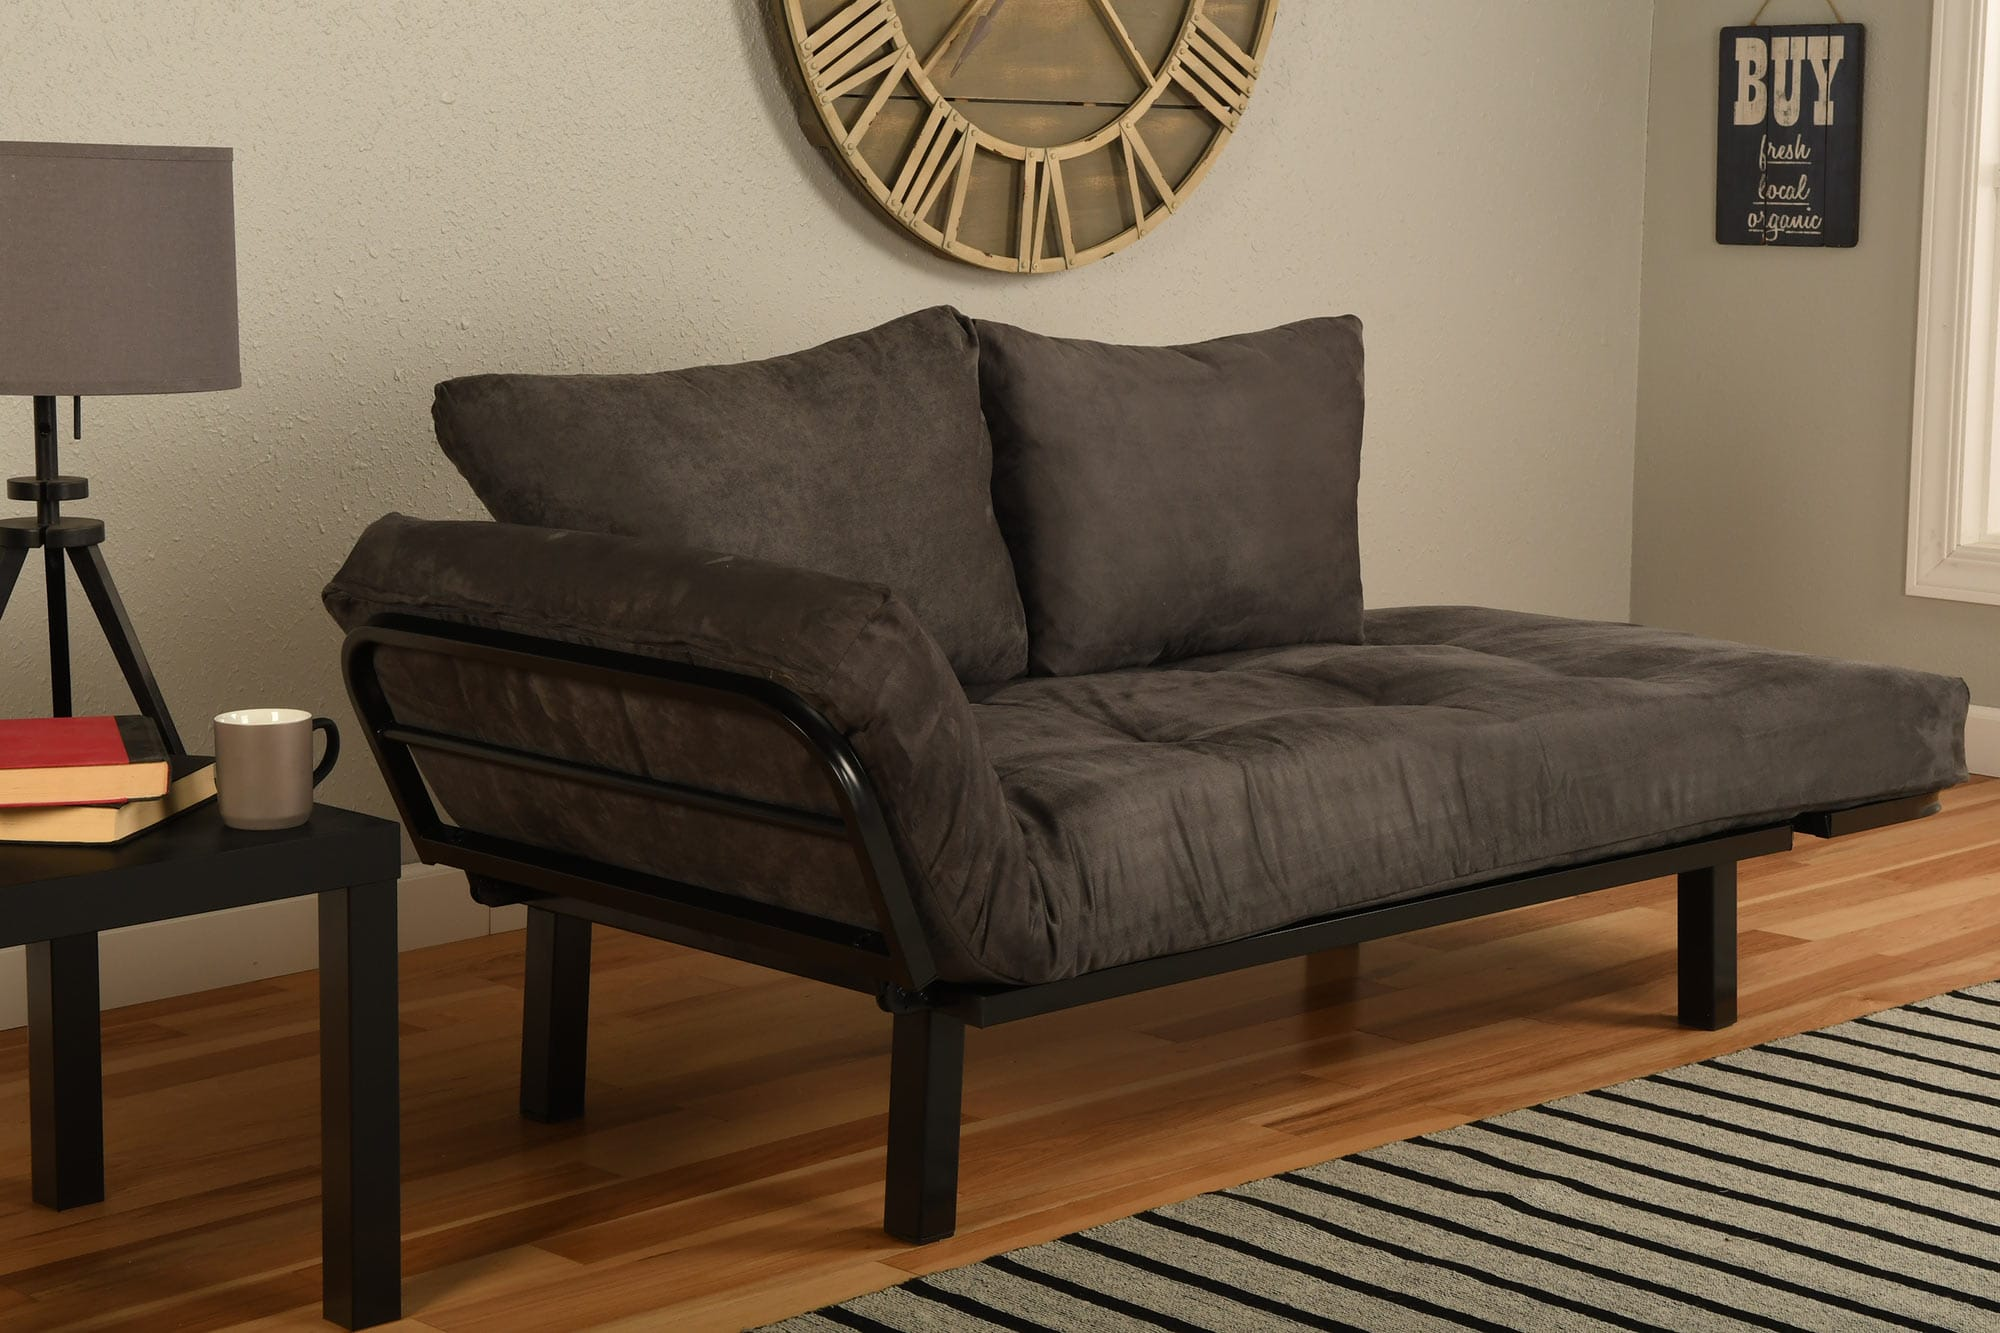 mattress college picture futons futon hill style image with black frame exelent metal r ideas round